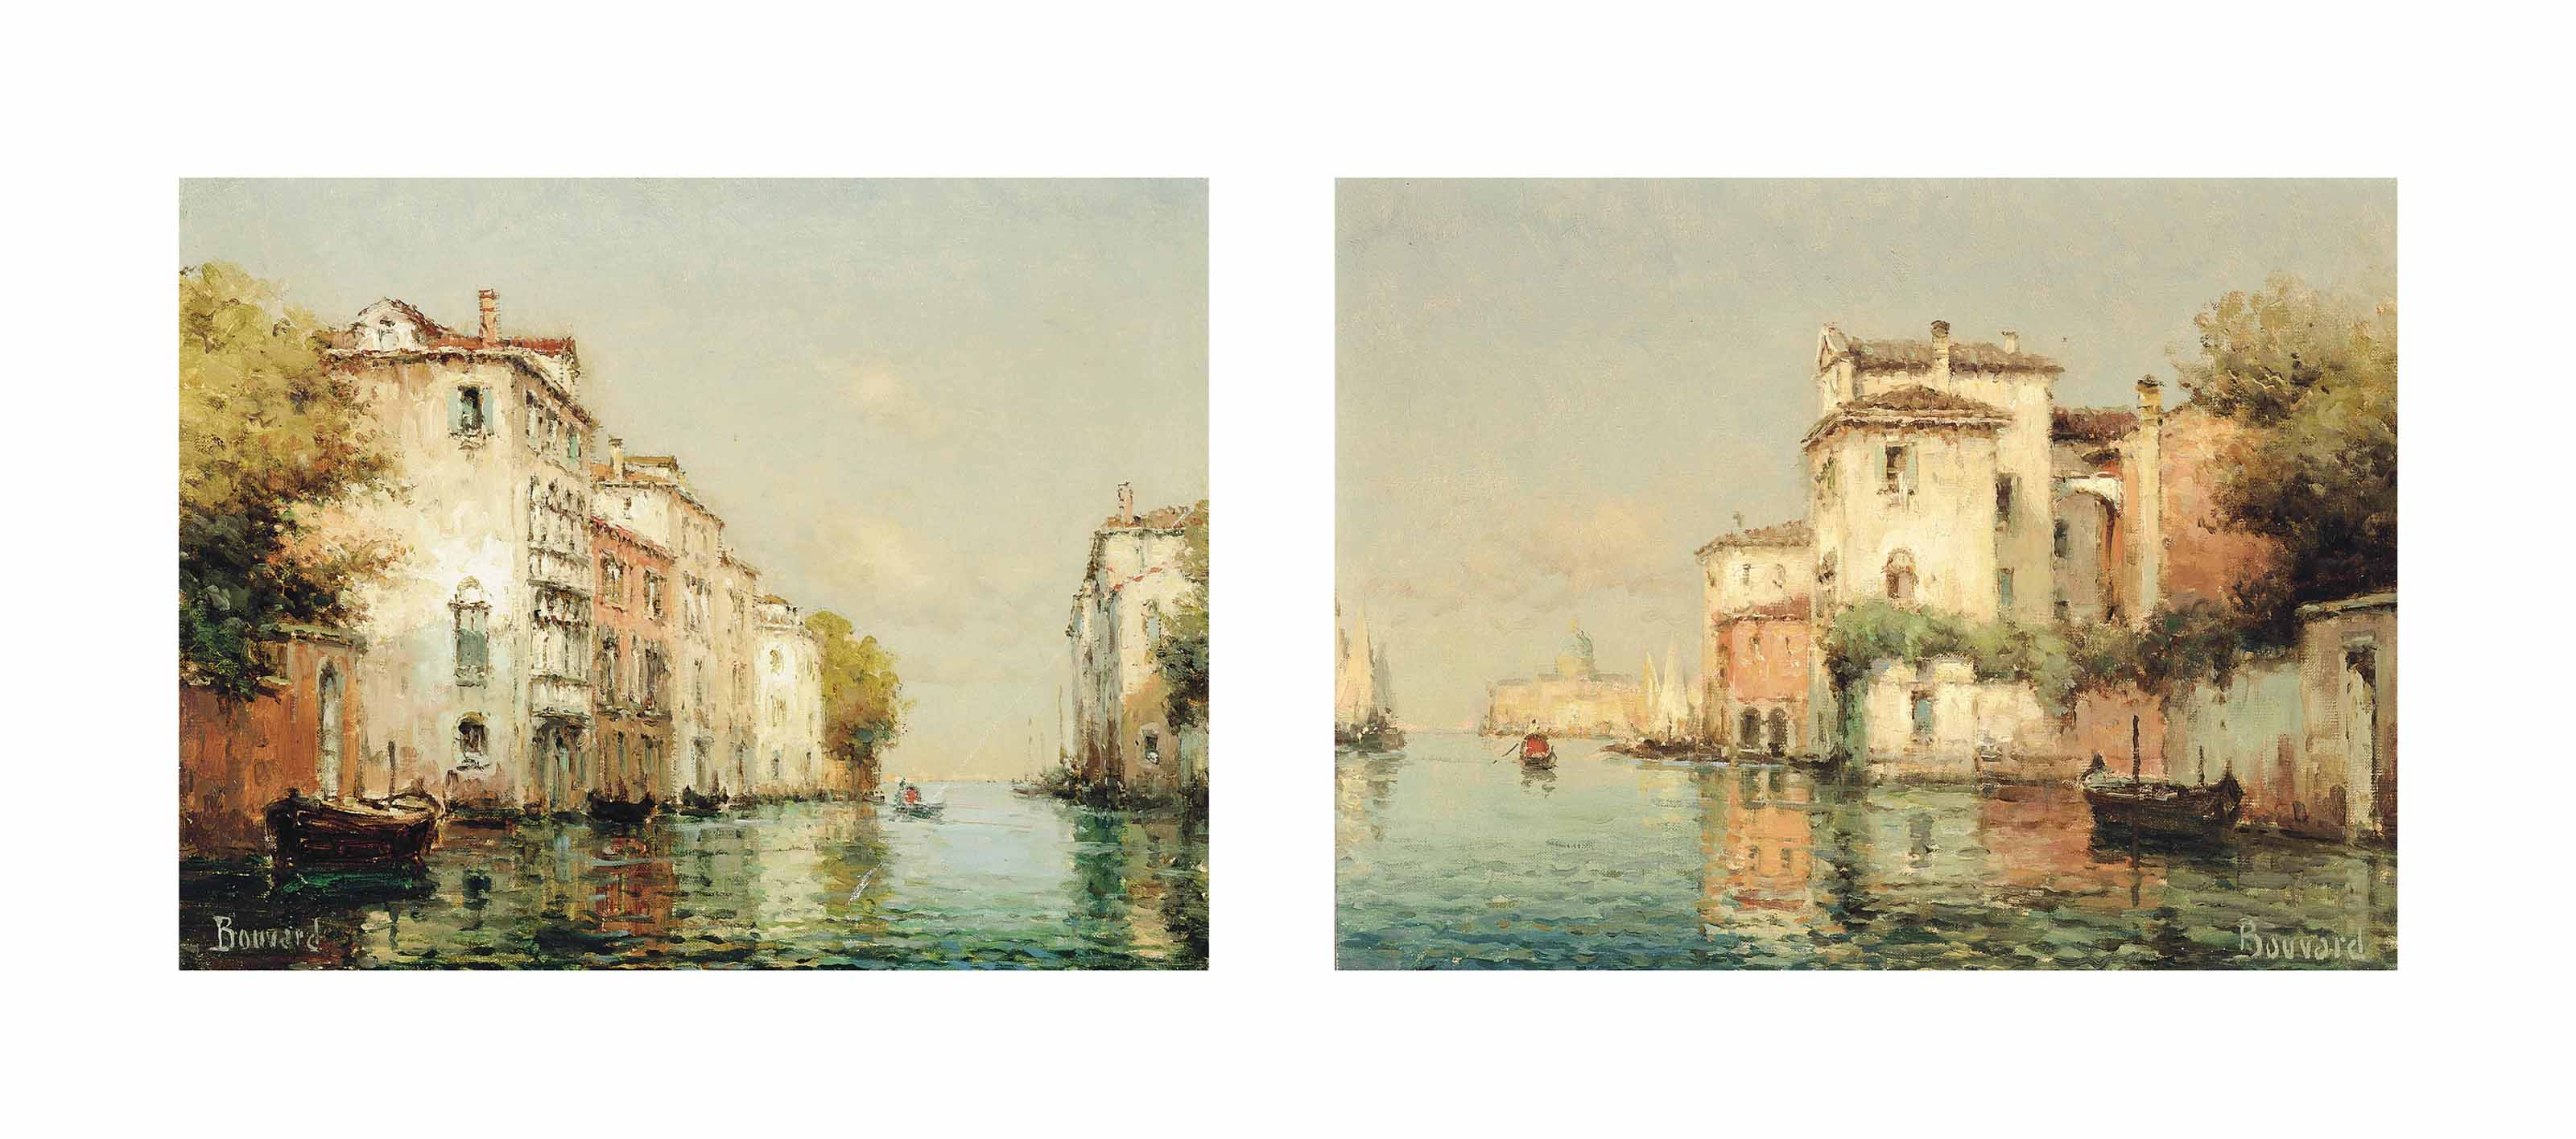 A gondolier on a quiet Venetian backwater; and A gondolier on a Venetian backwater, Santa Maria della Salute beyond